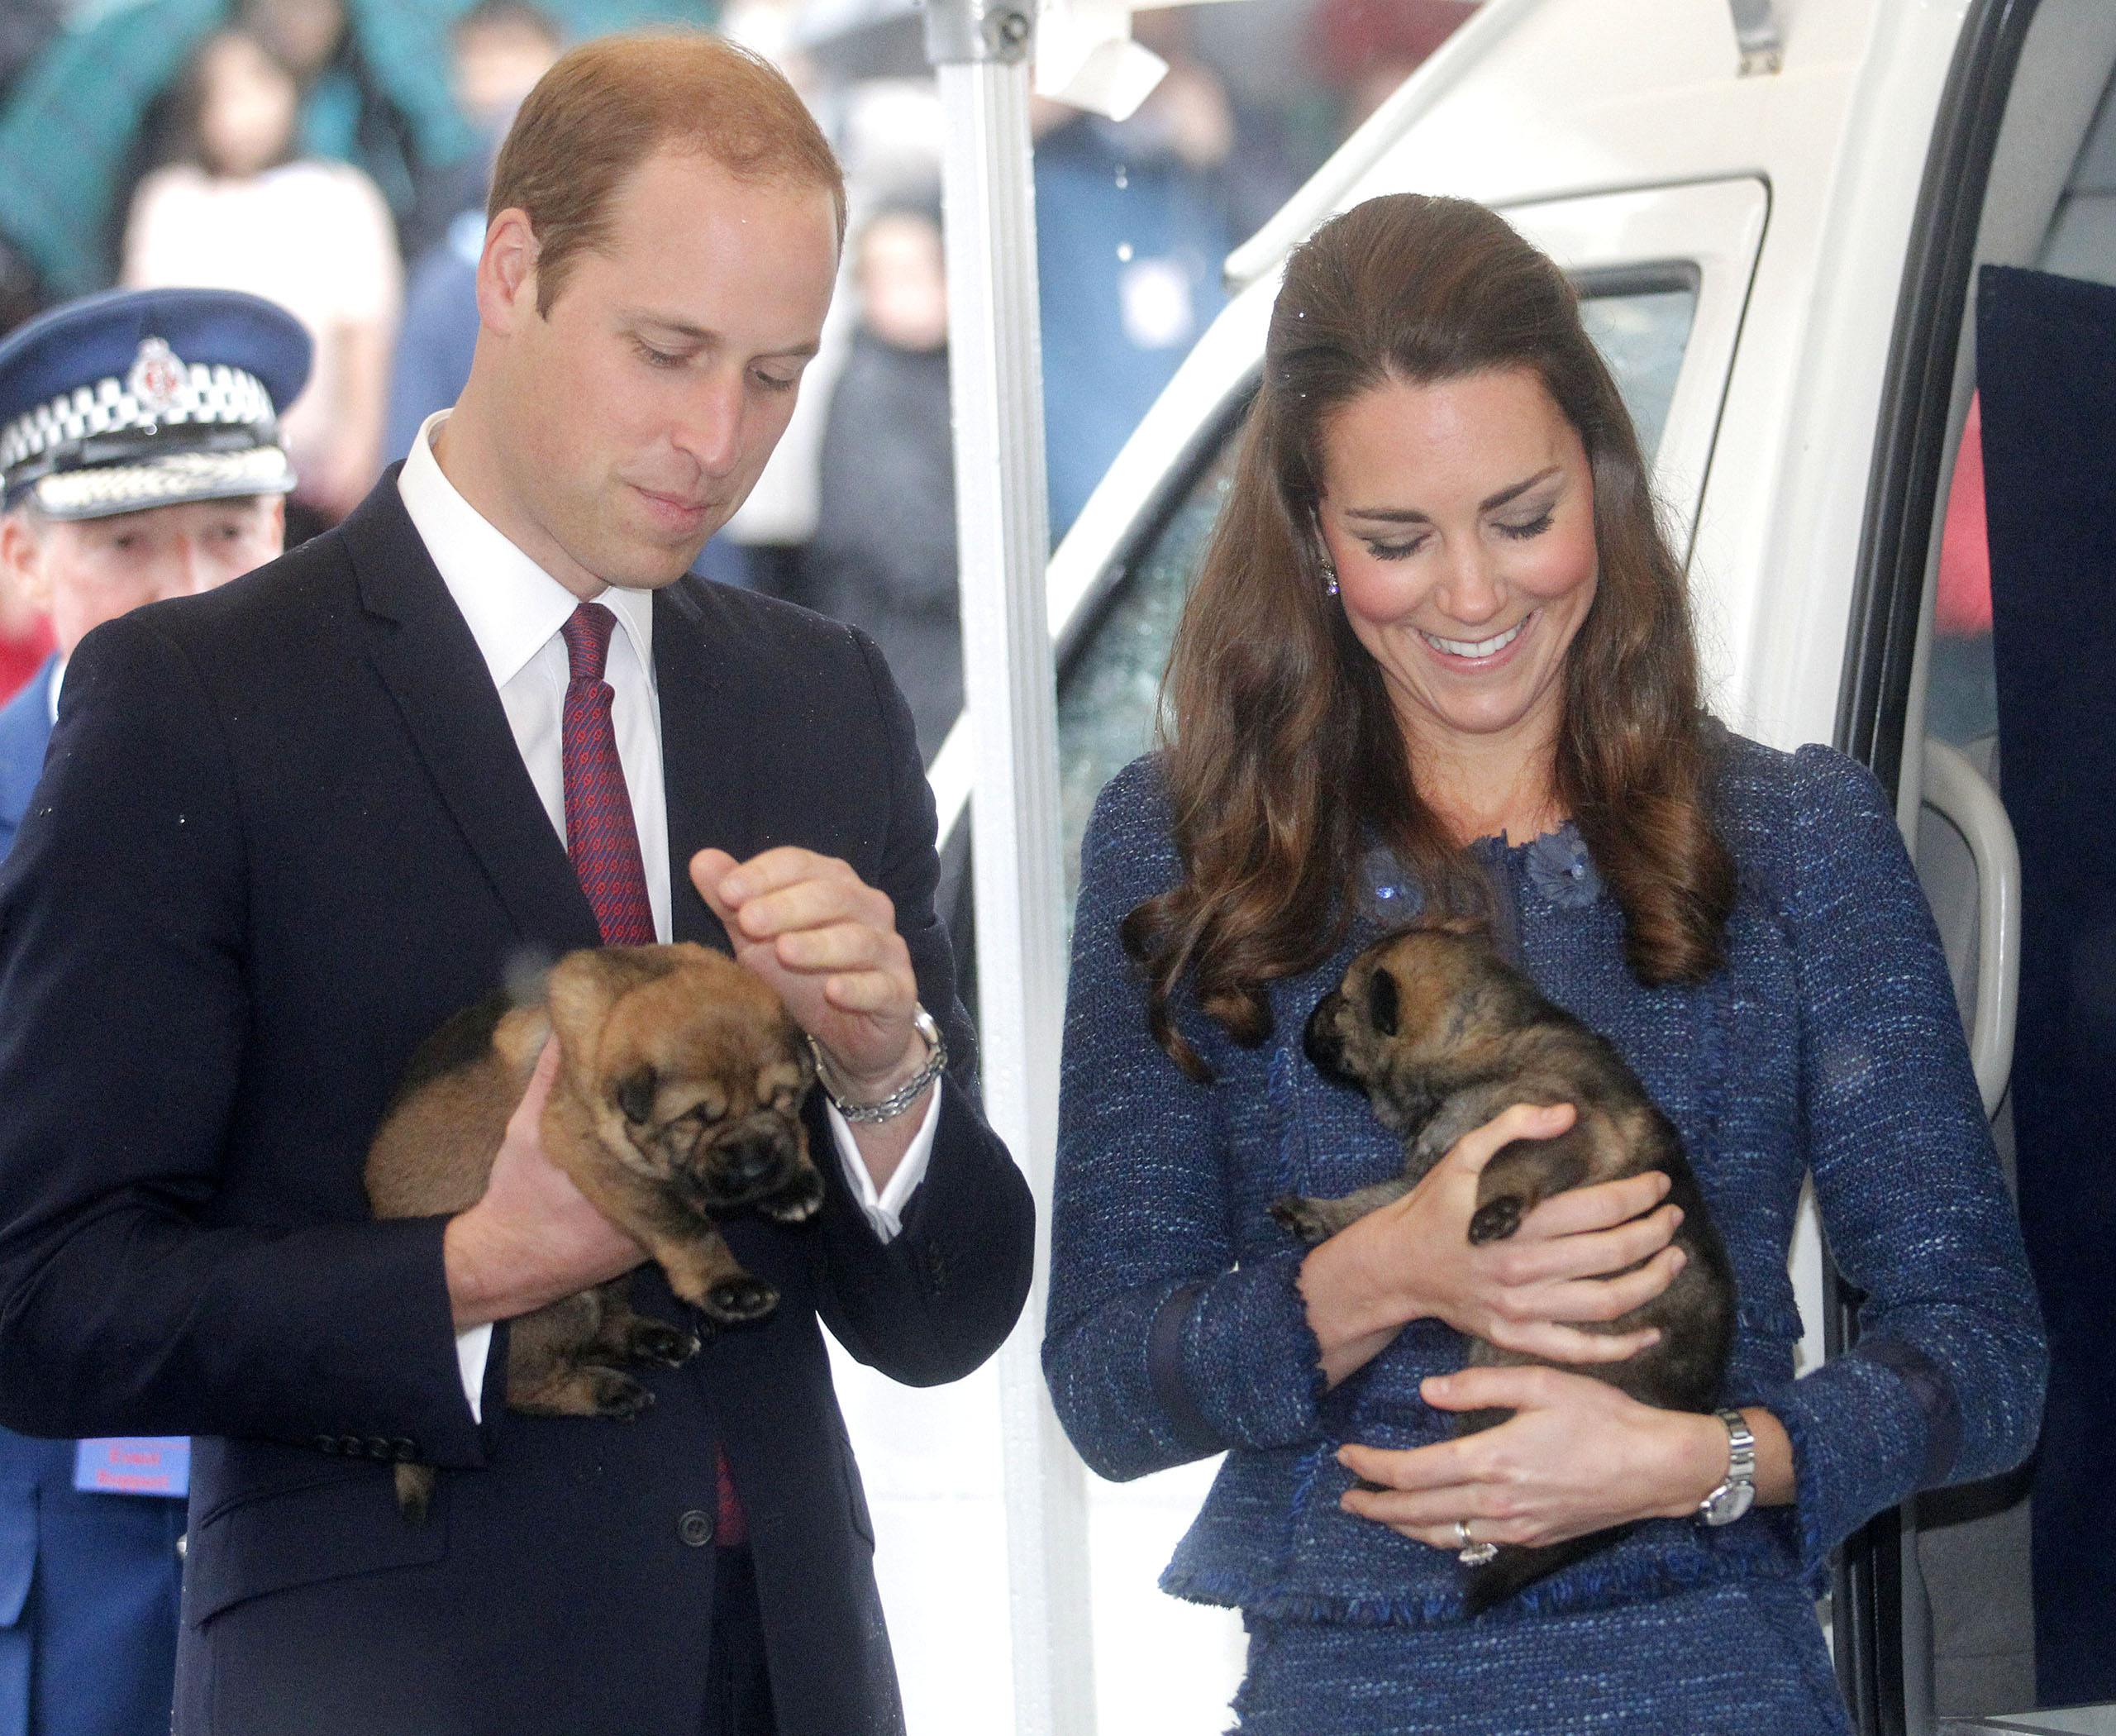 Prince William, Duke of Cambridge and Catherine, Duchess of Cambridge hold puppies during a visit to the Royal New Zealand Police College in Wellington, New Zealand on April 16, 2014.